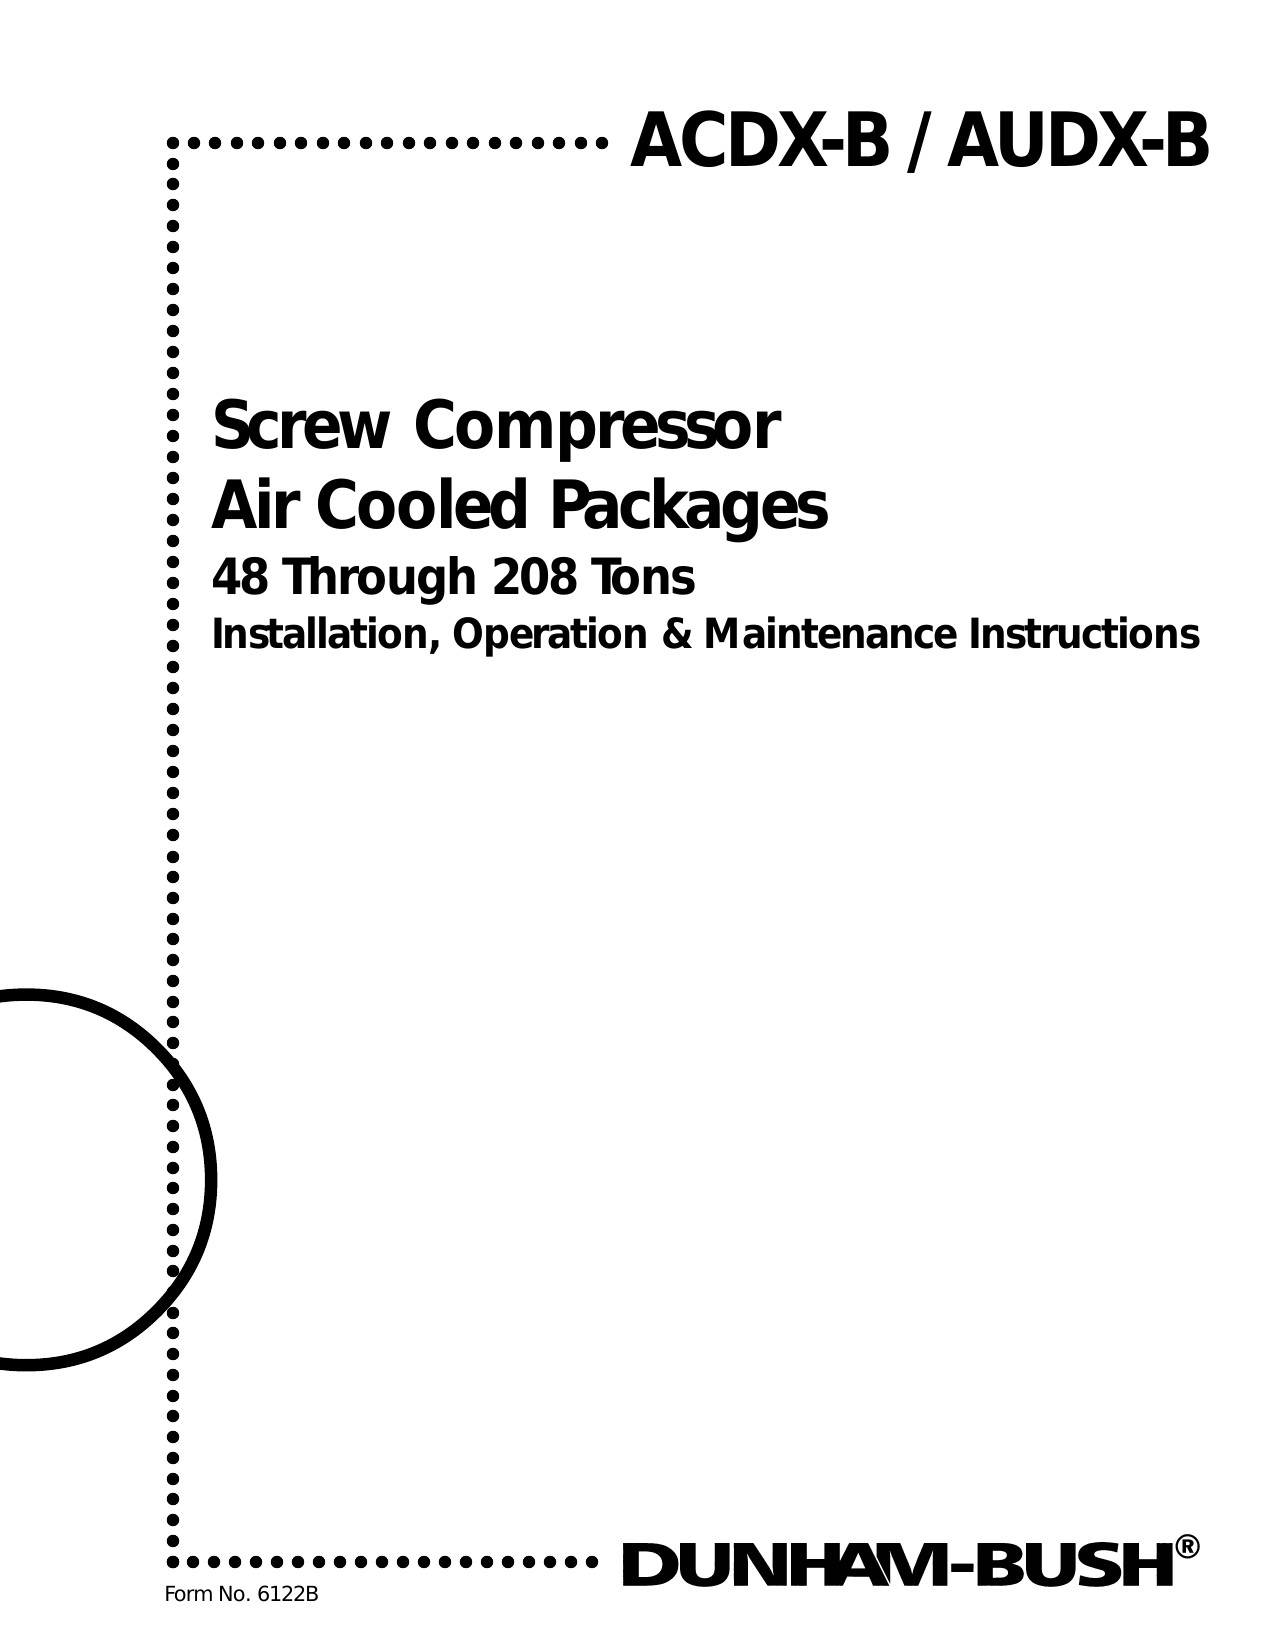 Tecumseh How to Re-wire Relay for Compressor Screw Pressor Air Cooled Packages Acdx B Audx B Of Tecumseh How to Re-wire Relay for Compressor Section K Refrigeration